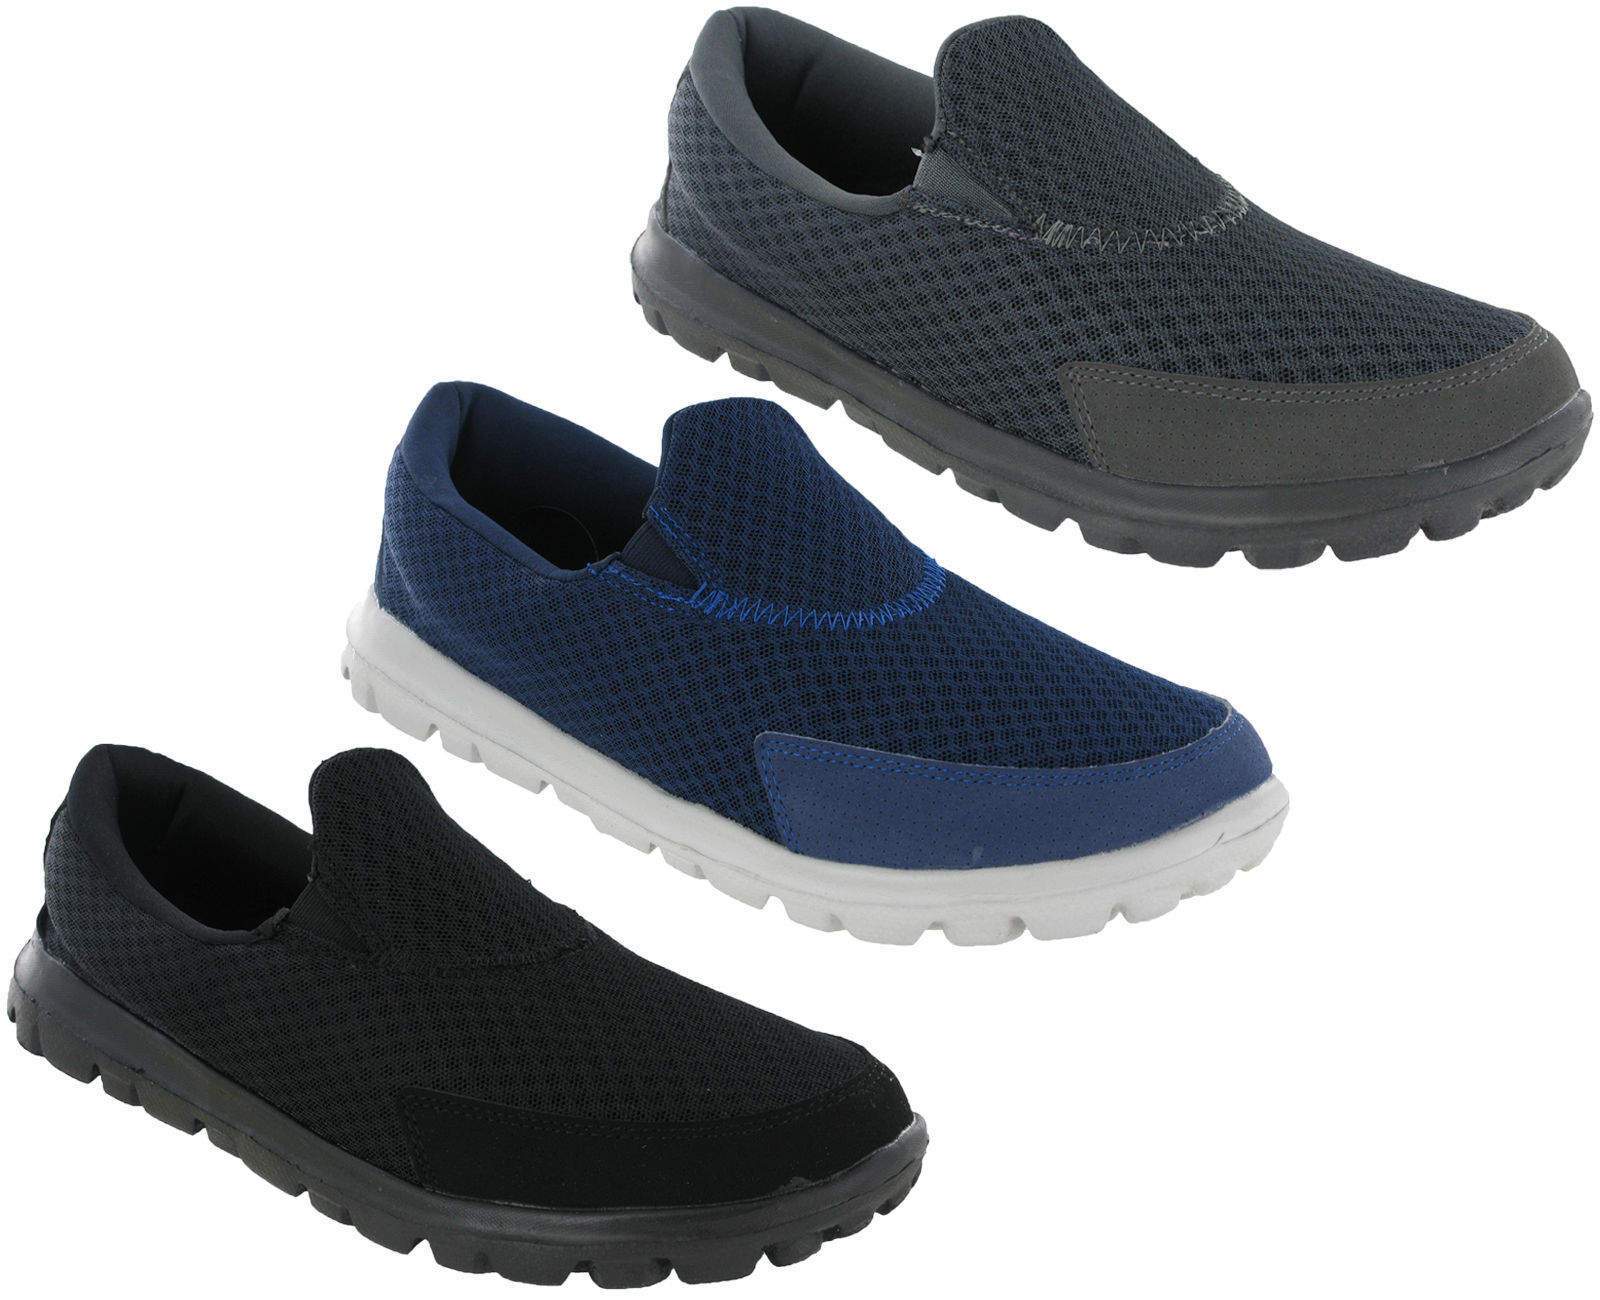 Ascot Soft Super Lightweight Mens Casual Soft Ascot Cushioned Go Walking Mesh Leisure Shoes 28276e